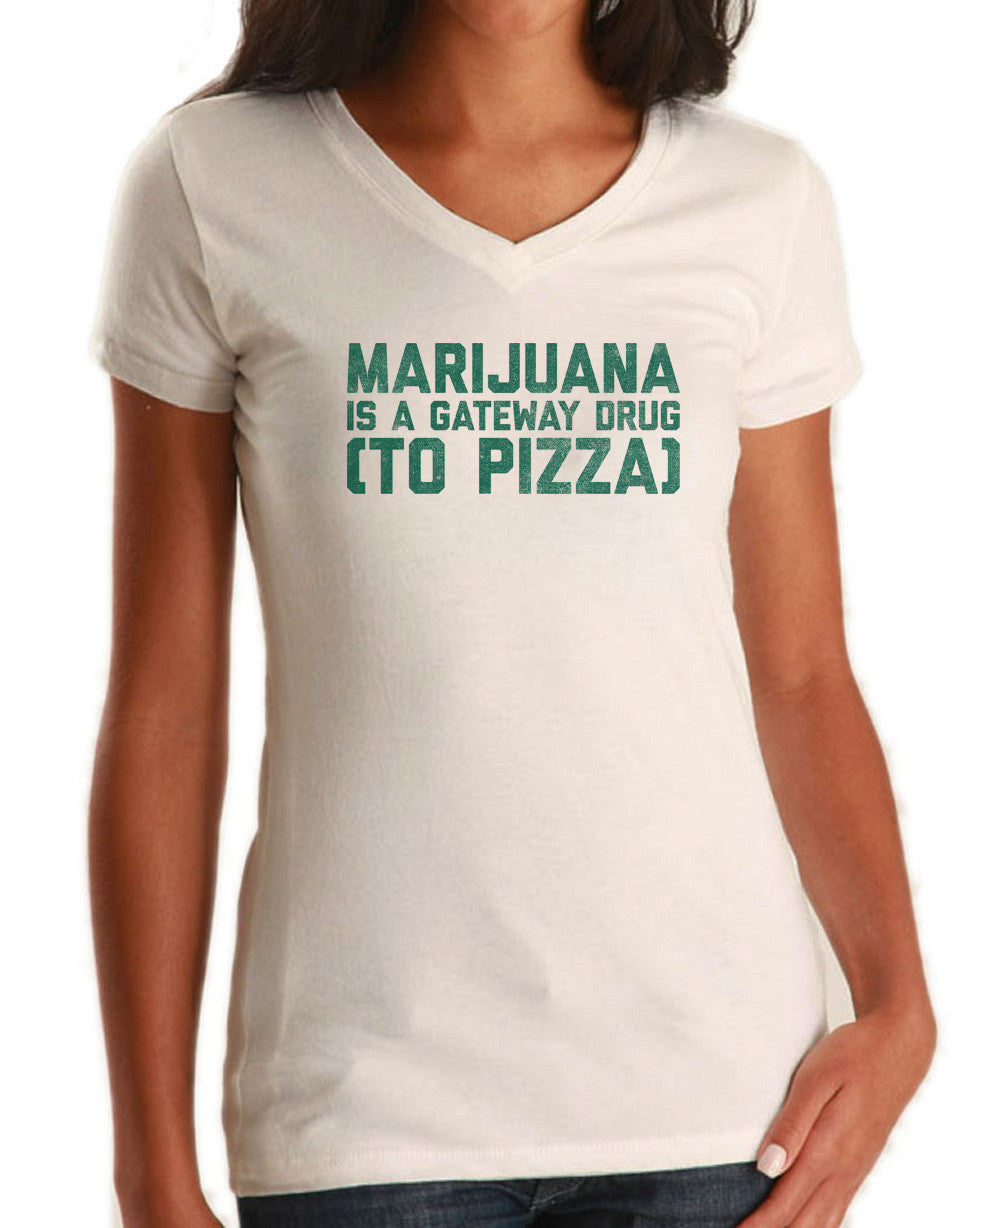 Women's Marijuana is a Gateway Drug to Pizza Vneck T-Shirt